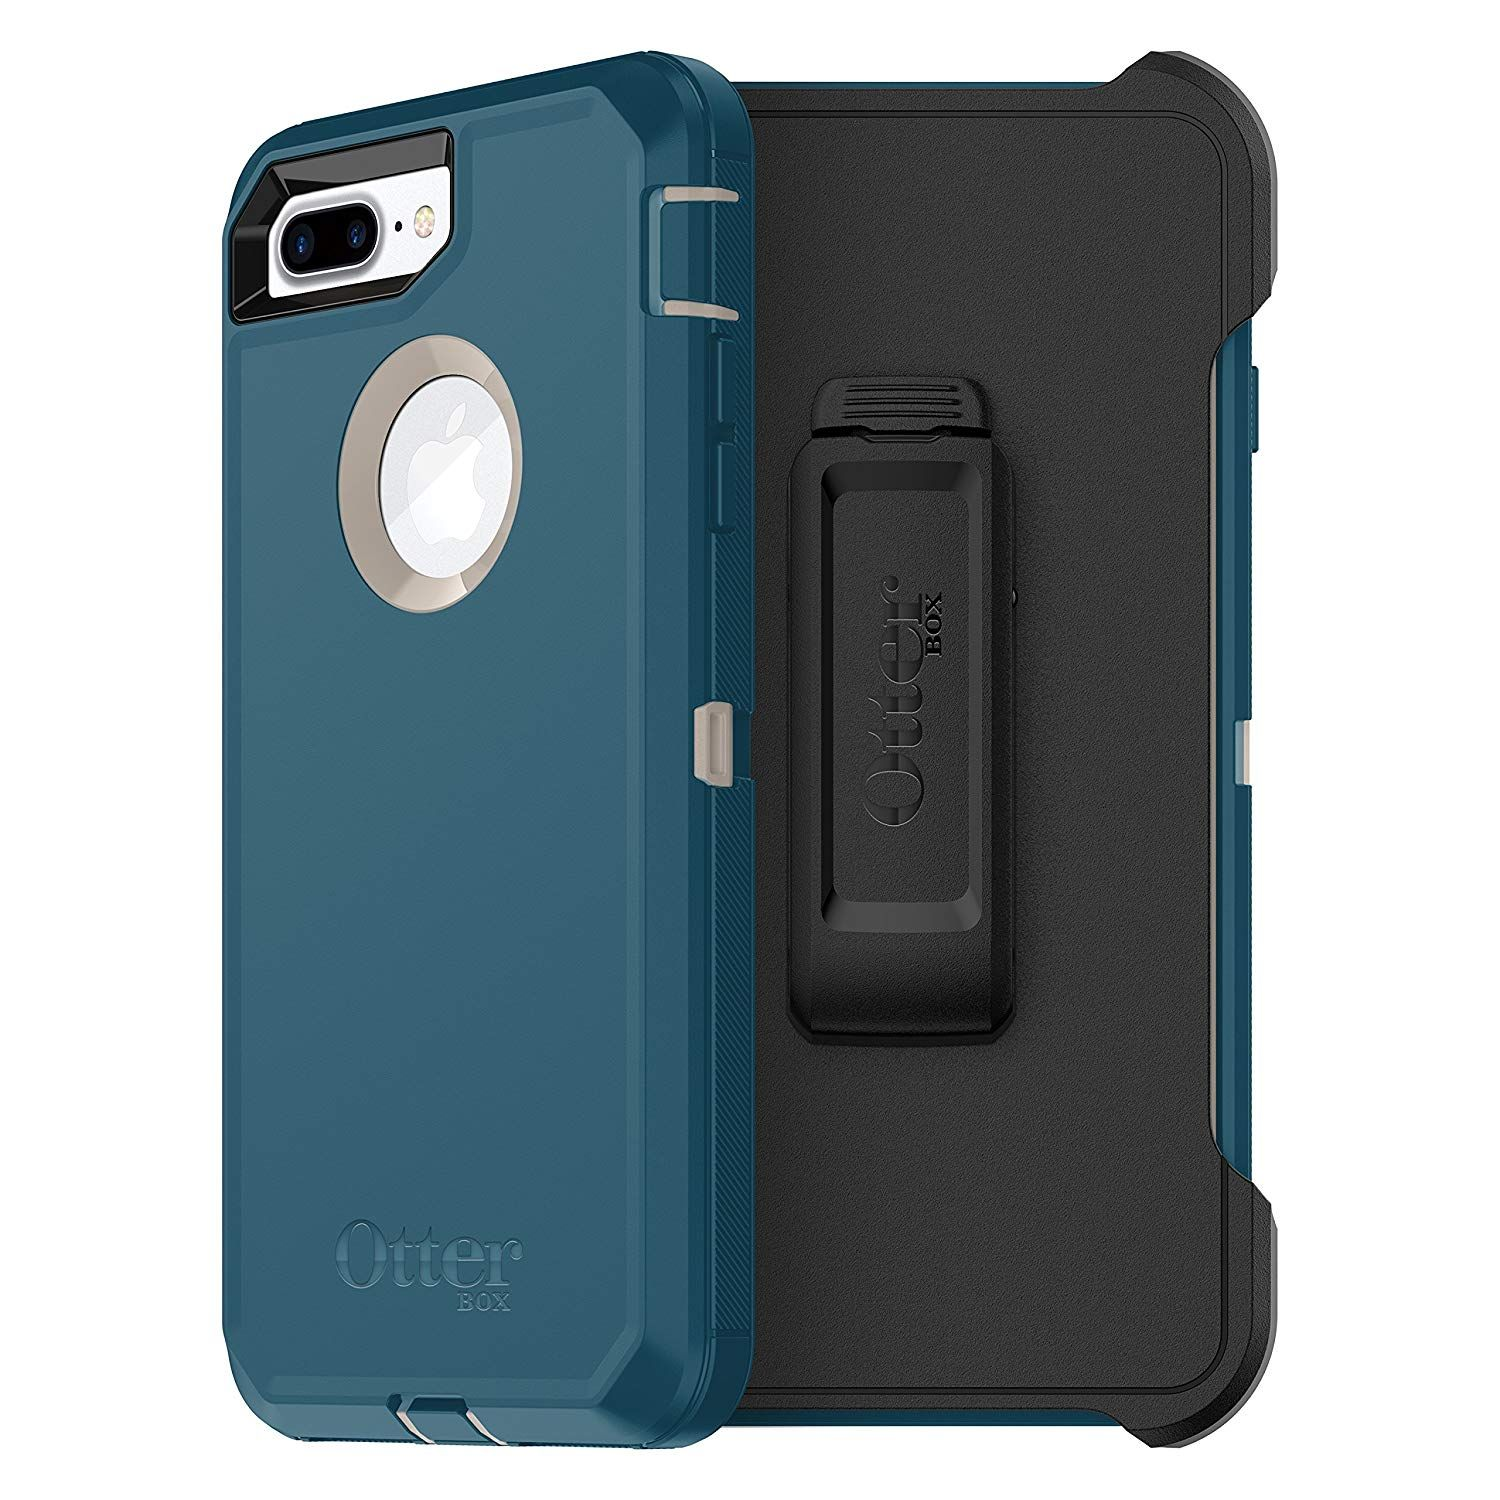 Otterbox defender series case for iphone 8